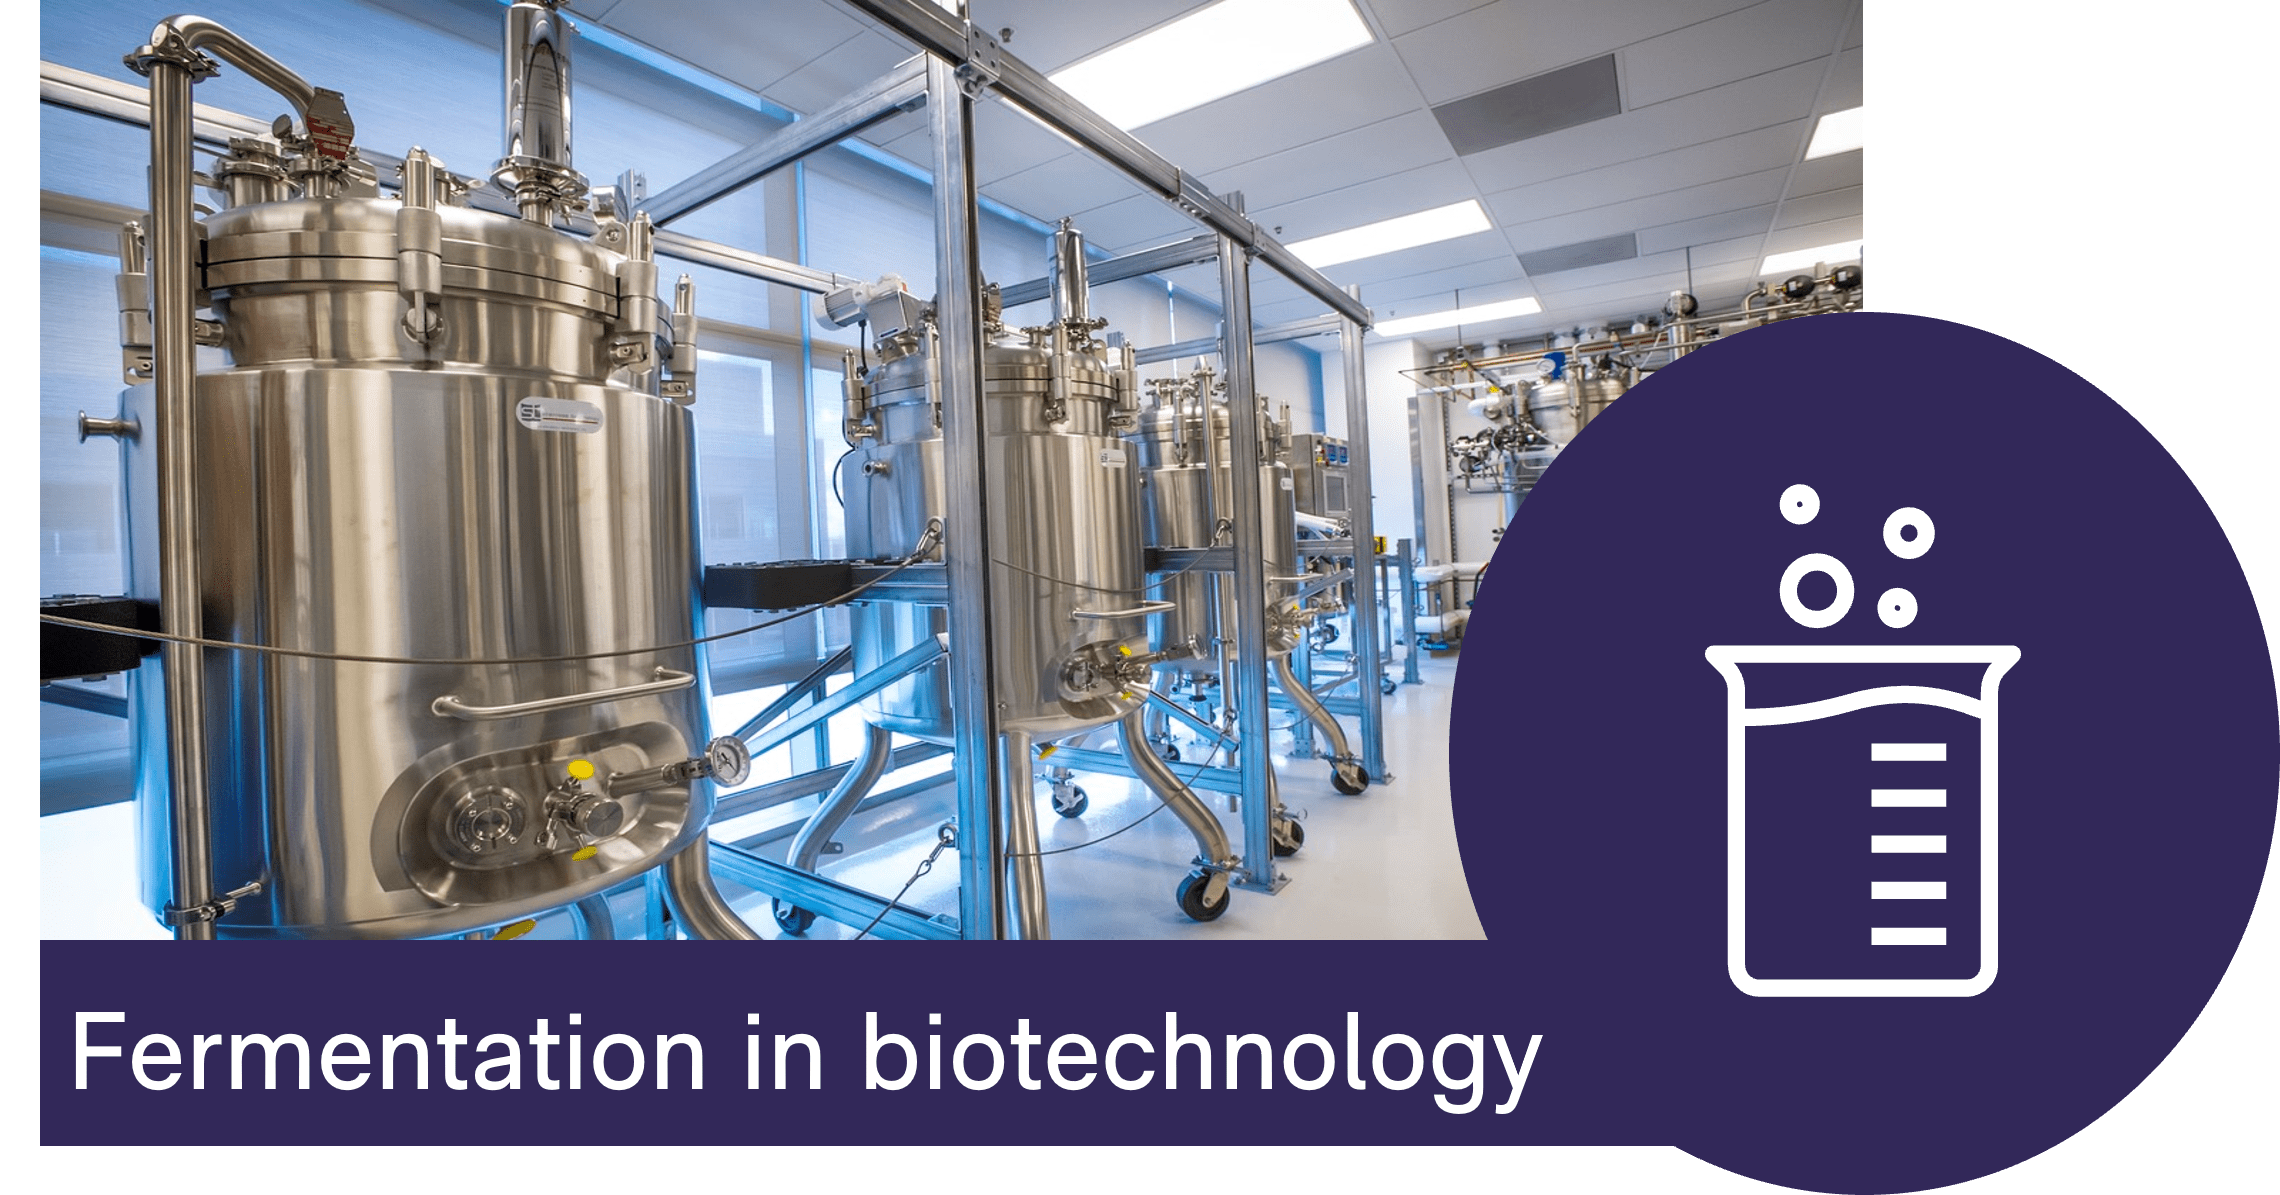 BactoBox is a game-changer for fast, reliable and easy tracking of cell counts in fermentation